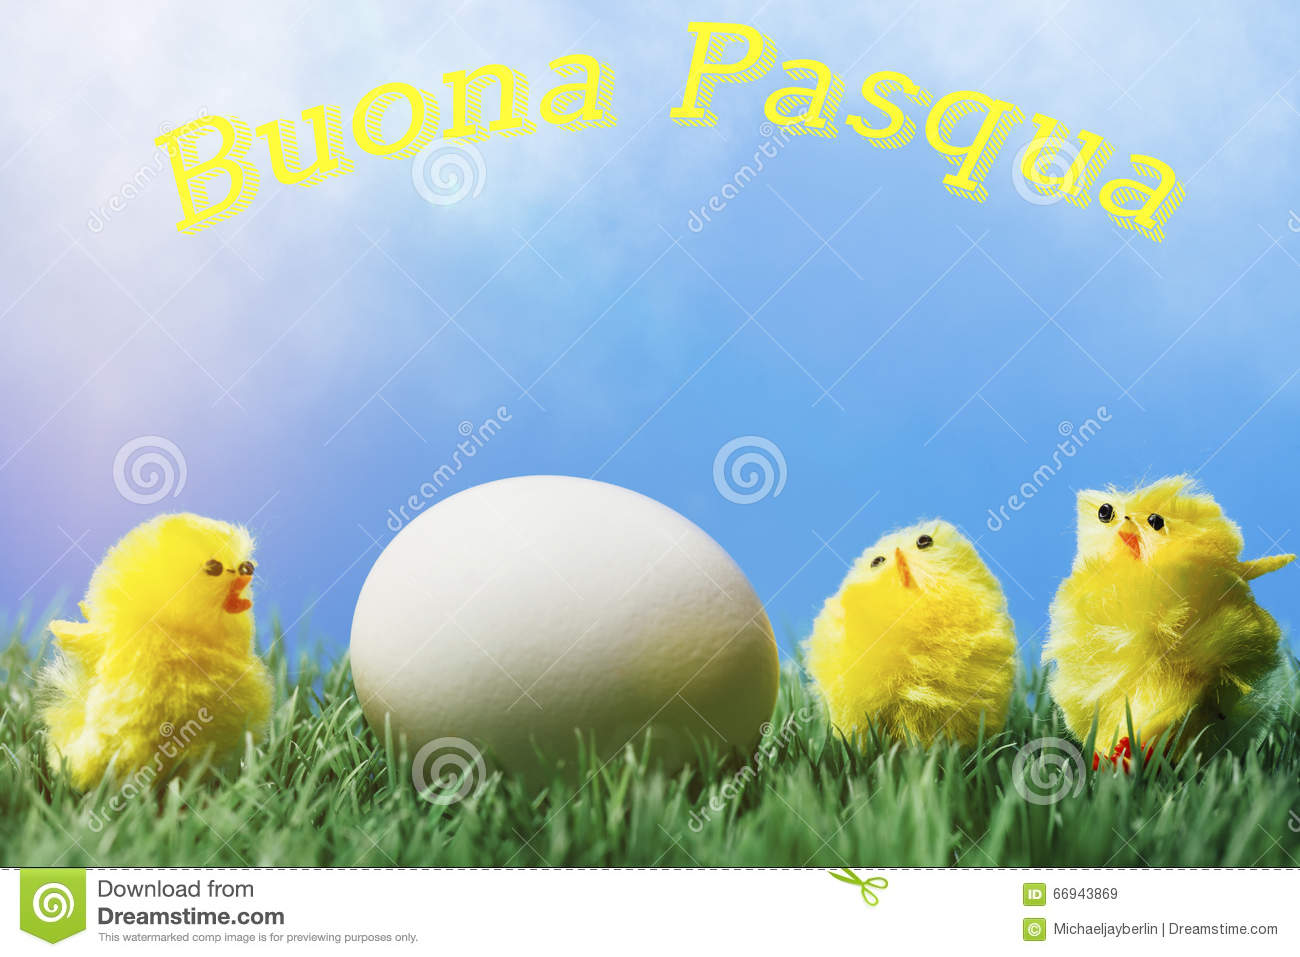 Italian easter greeting text group of chicks surrounding egg italian easter greeting text group of chicks surrounding egg kristyandbryce Gallery